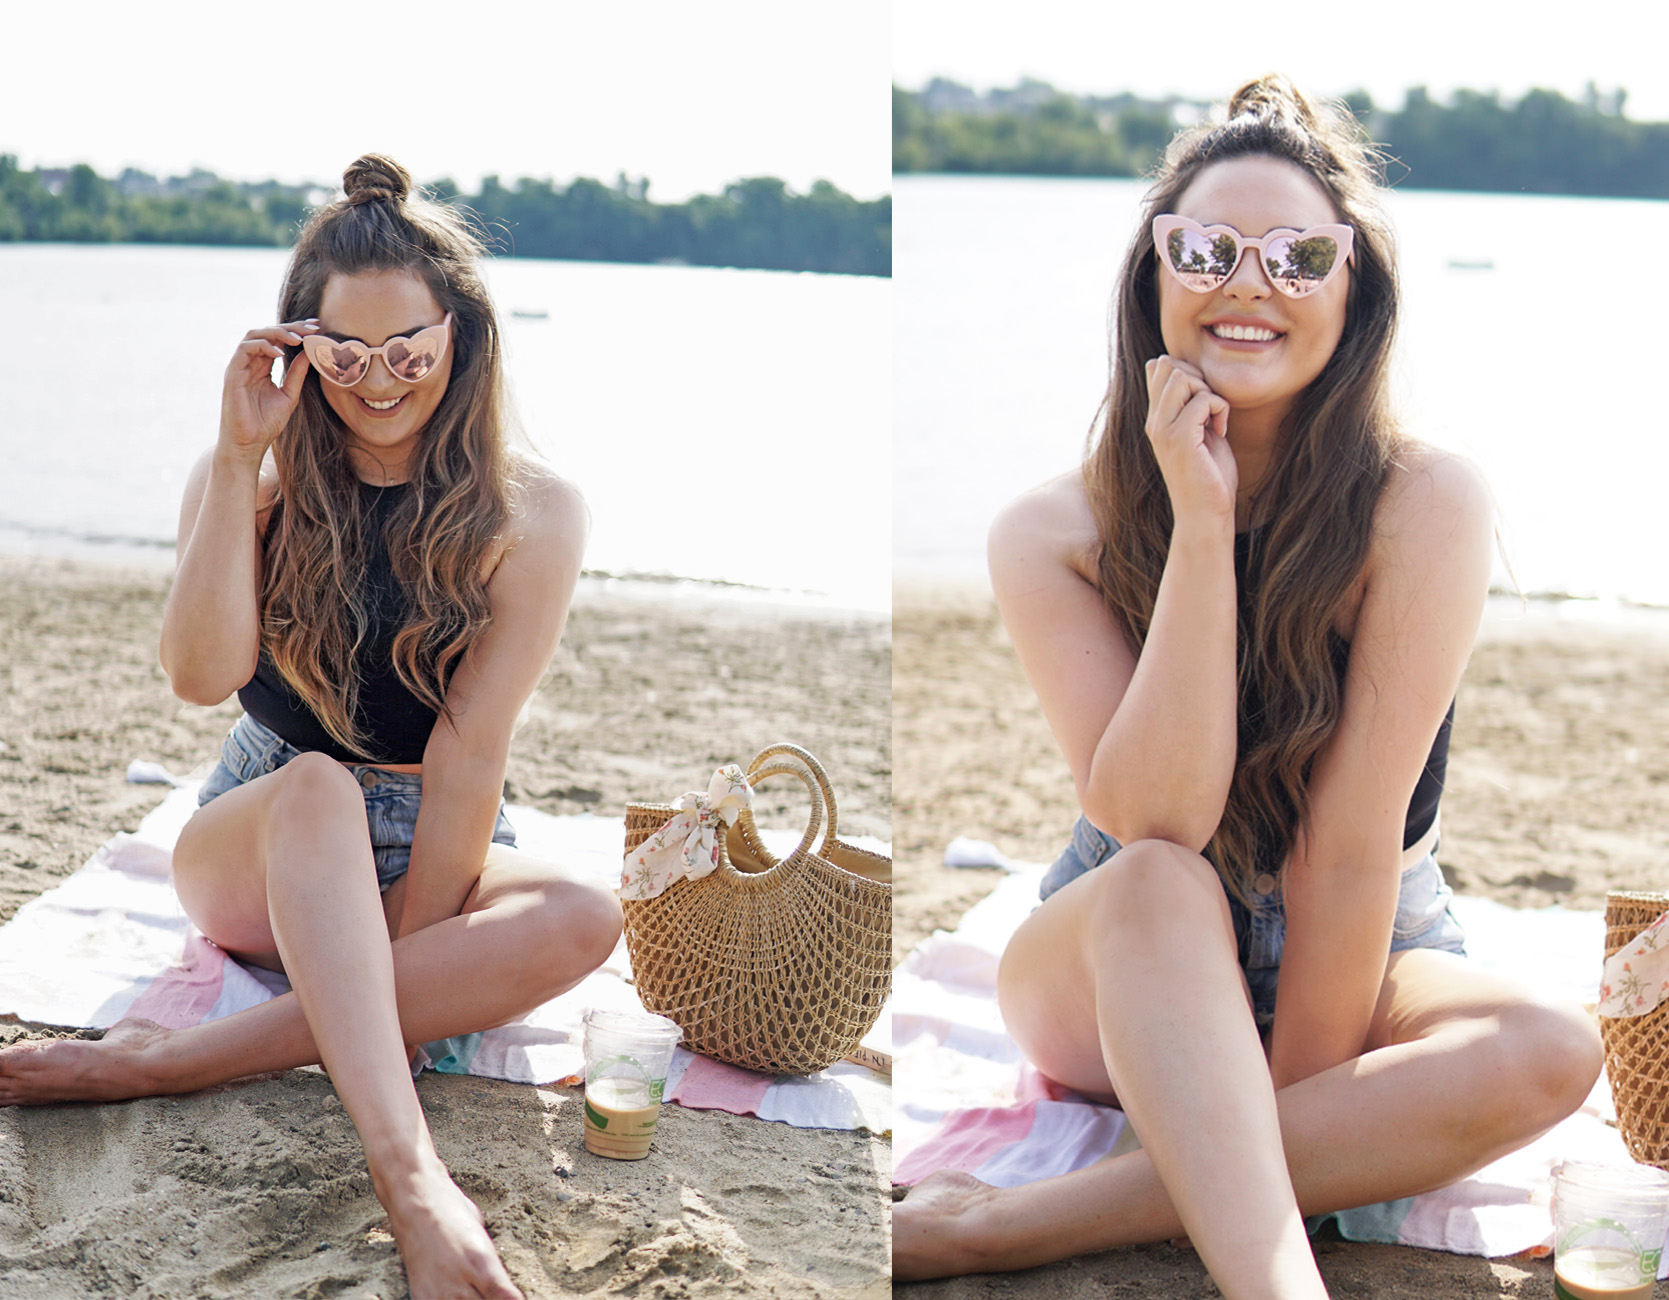 Mash Elle beauty blogger | diy topknot | Cibu hair | topknot tutorial | summer beach| topknot hair style idea| heart sunglasses | black crop top | jean shorts |